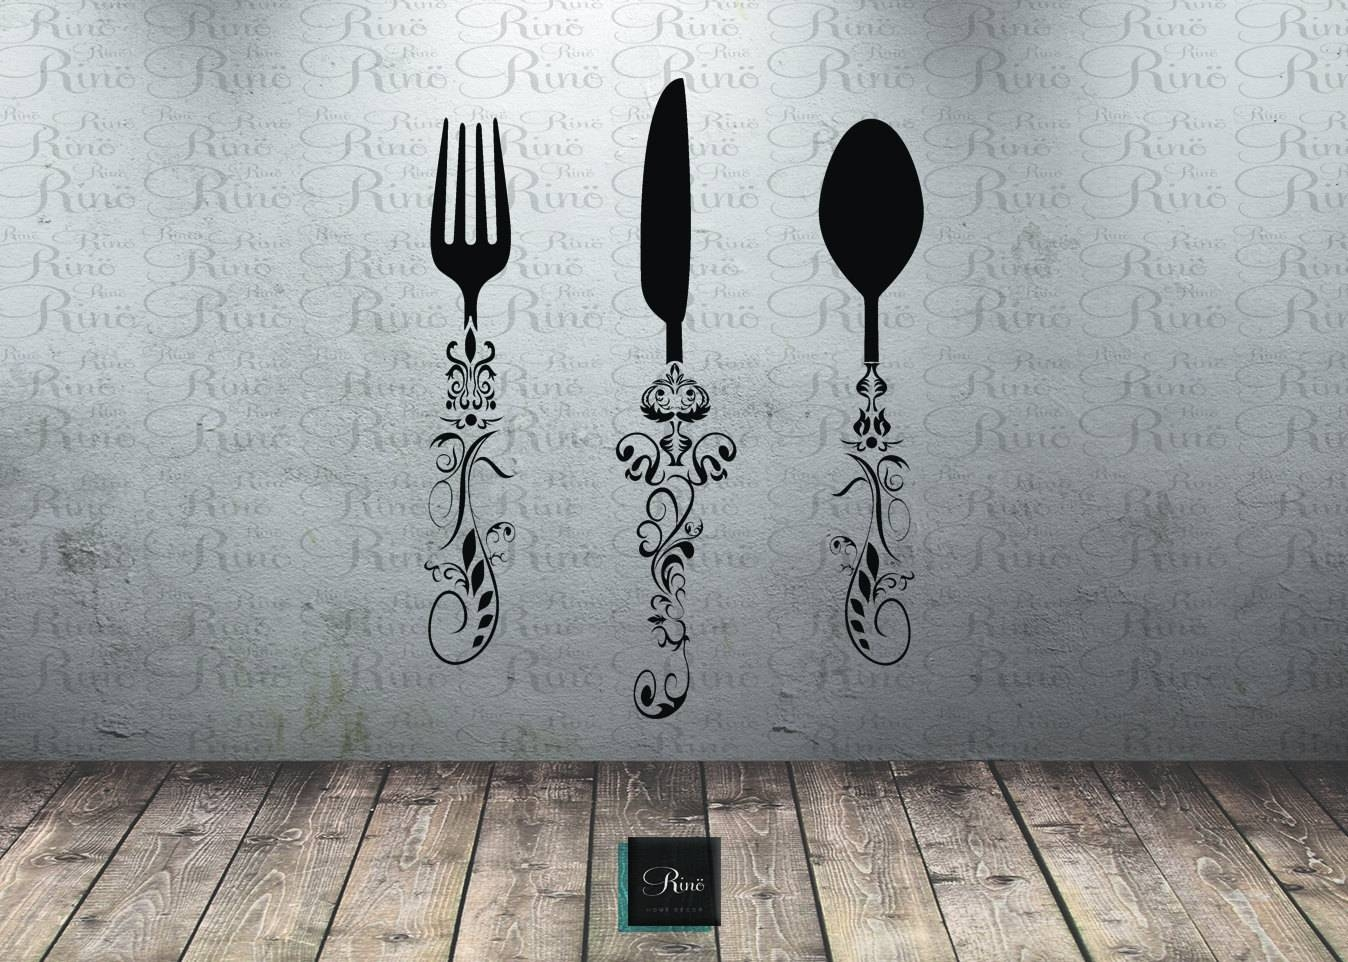 Utensil Decals (5Ft) Kitchen Wall Decal – Knife Spoon Fork Wall Pertaining To 2018 Large Utensil Wall Art (View 11 of 20)